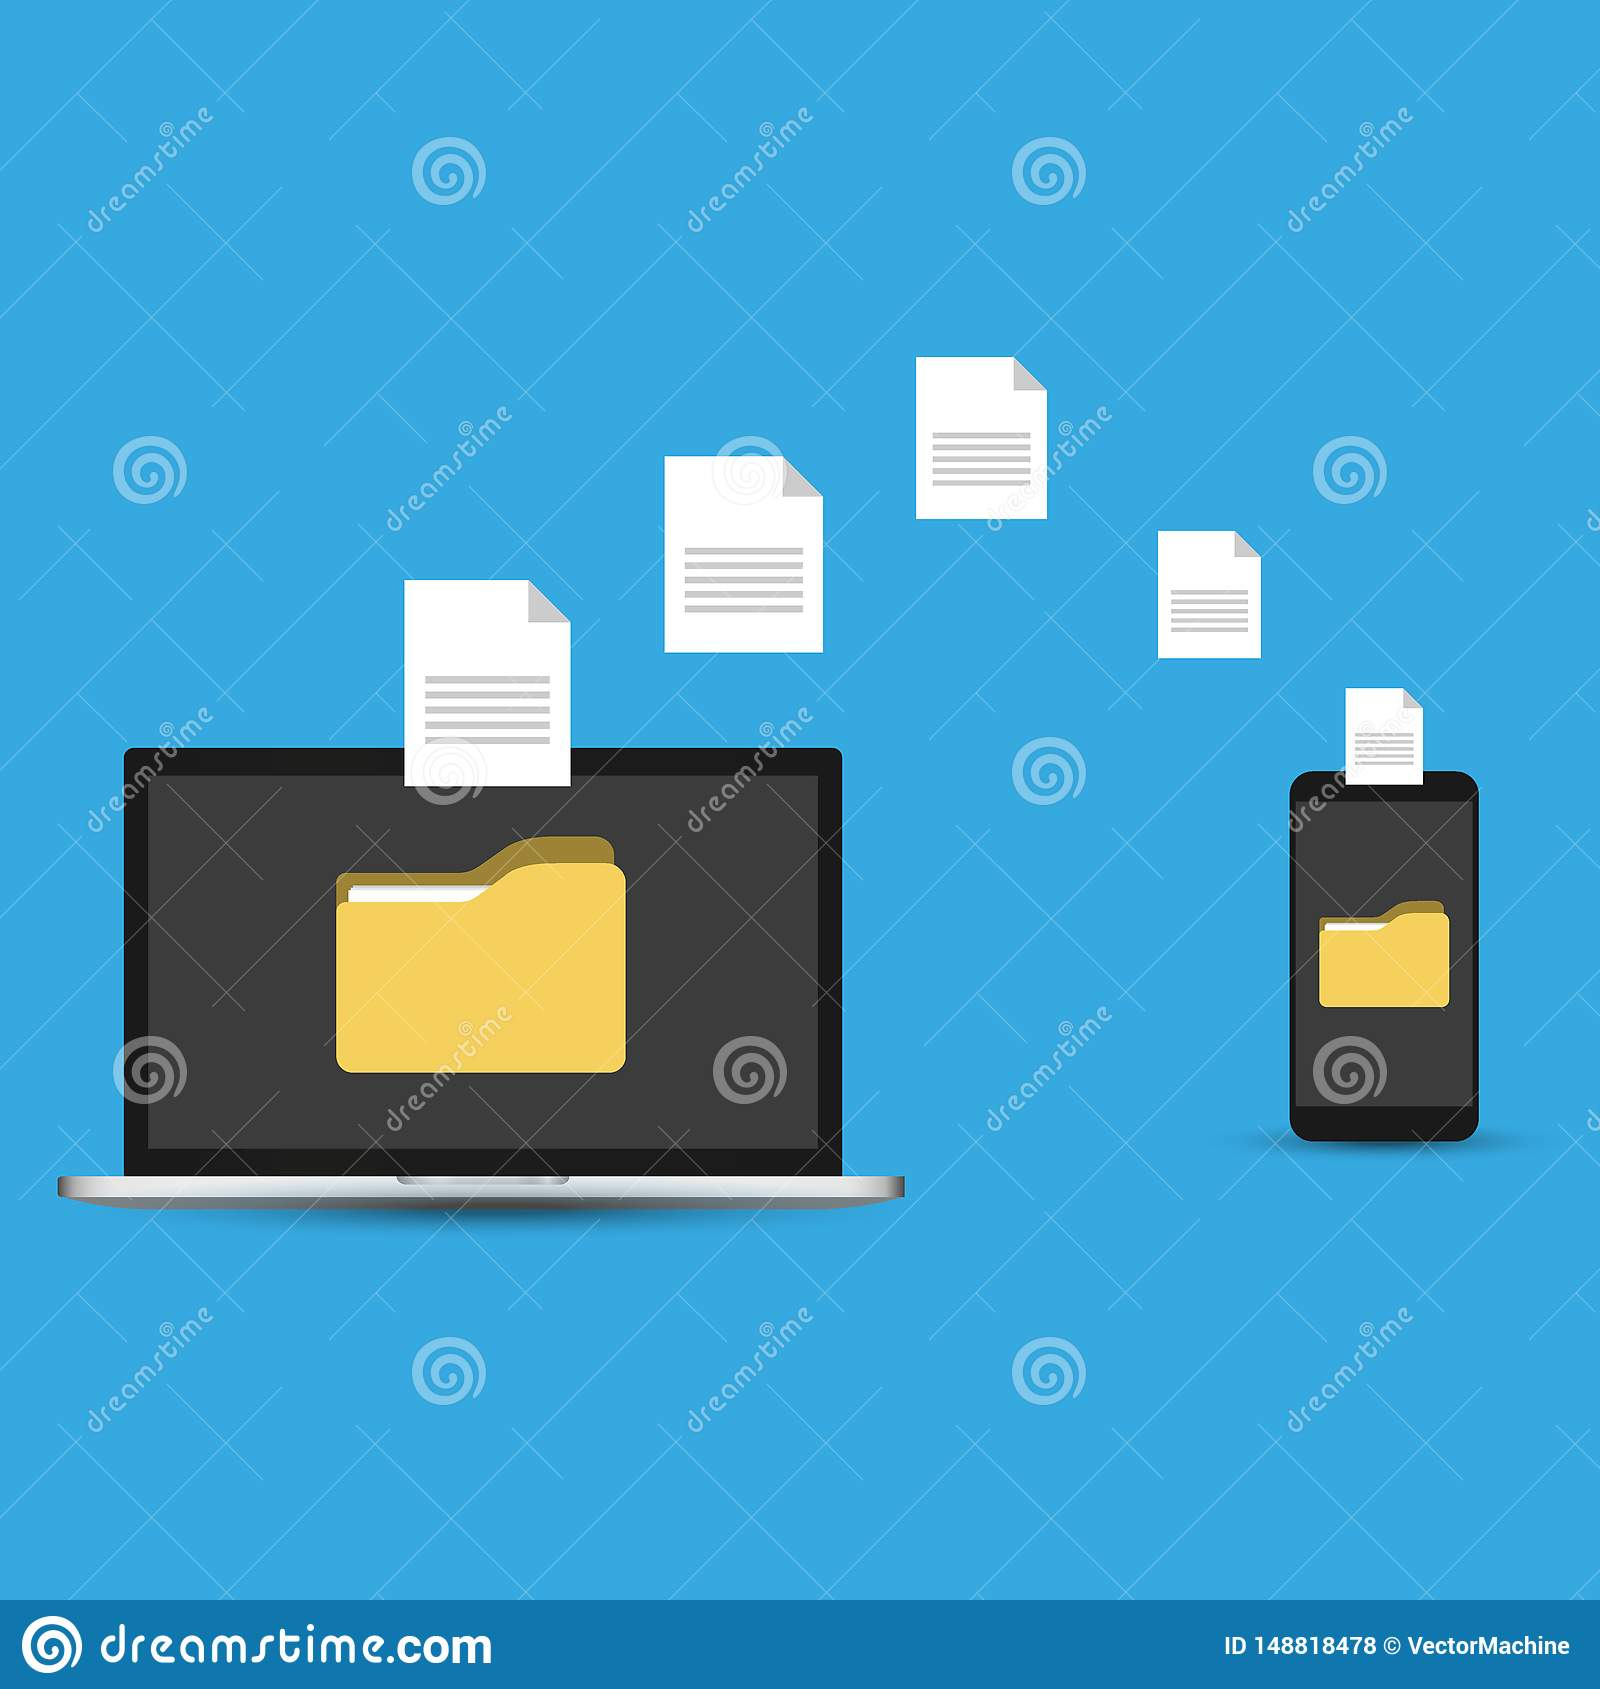 File transfer. Hand holding smartphone with folder on screen and documents transferred to laptop. Copy files, backup, file sharing